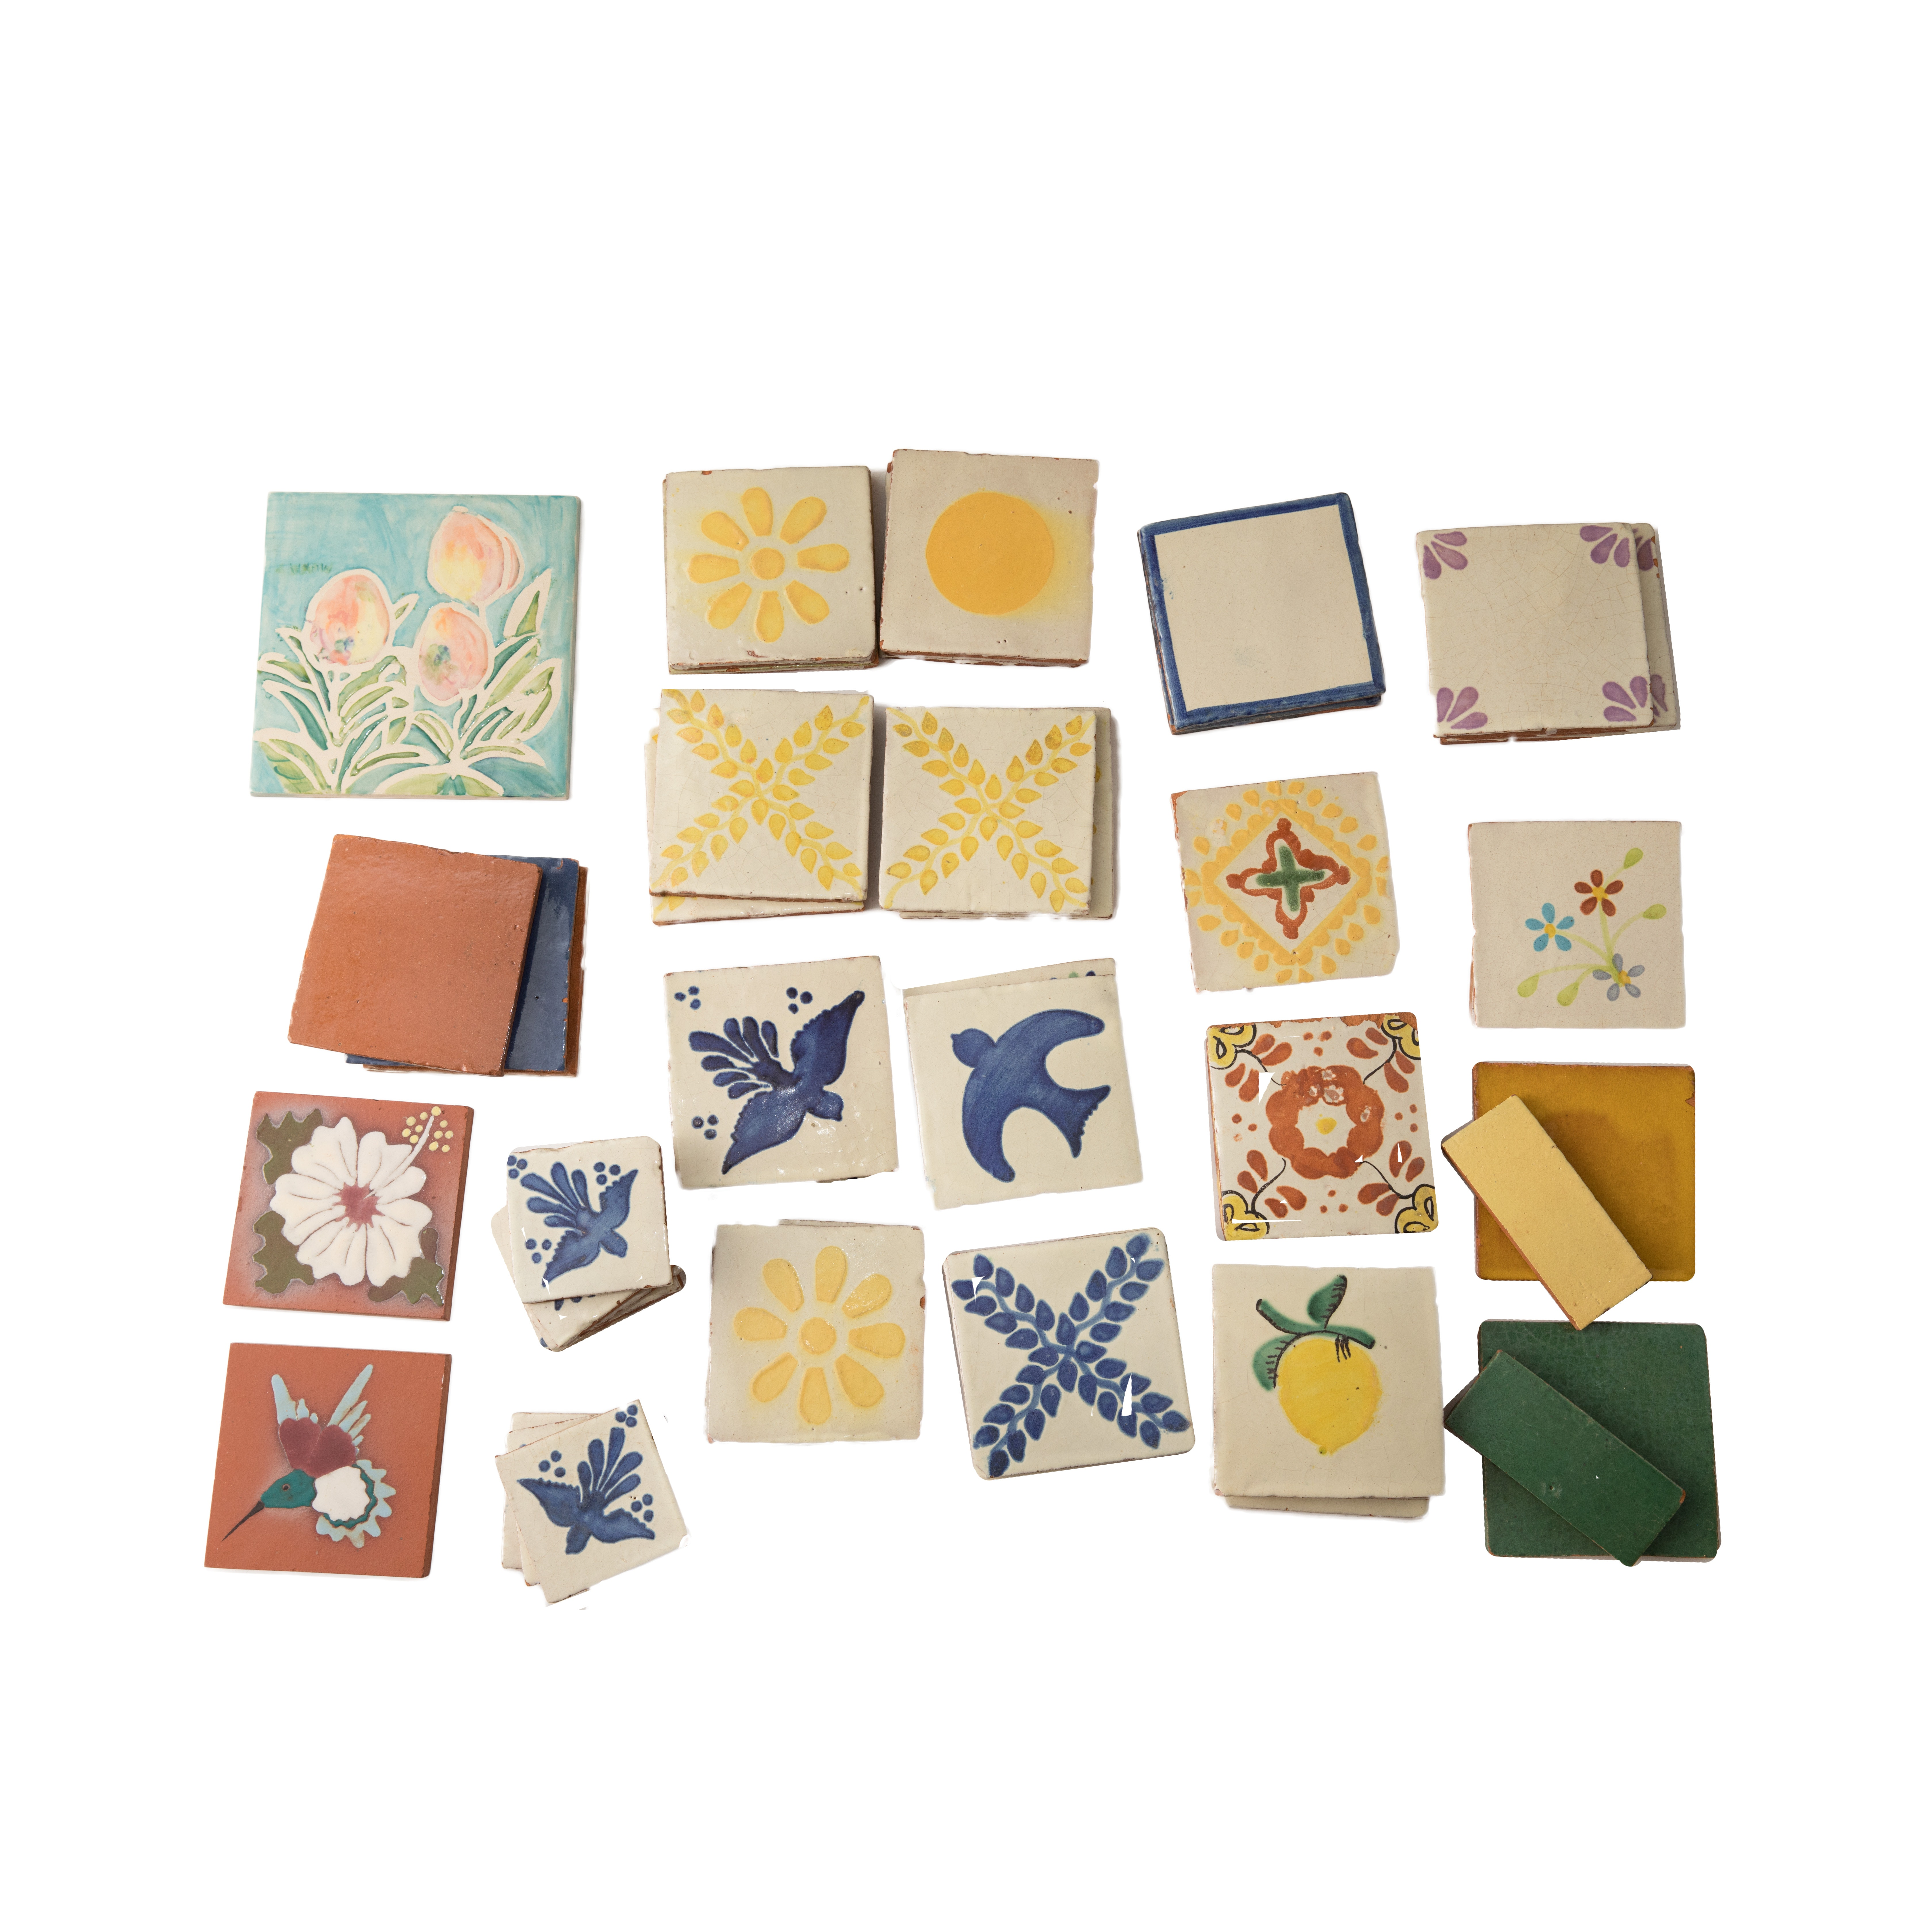 Hand-Painted Clay Tiles